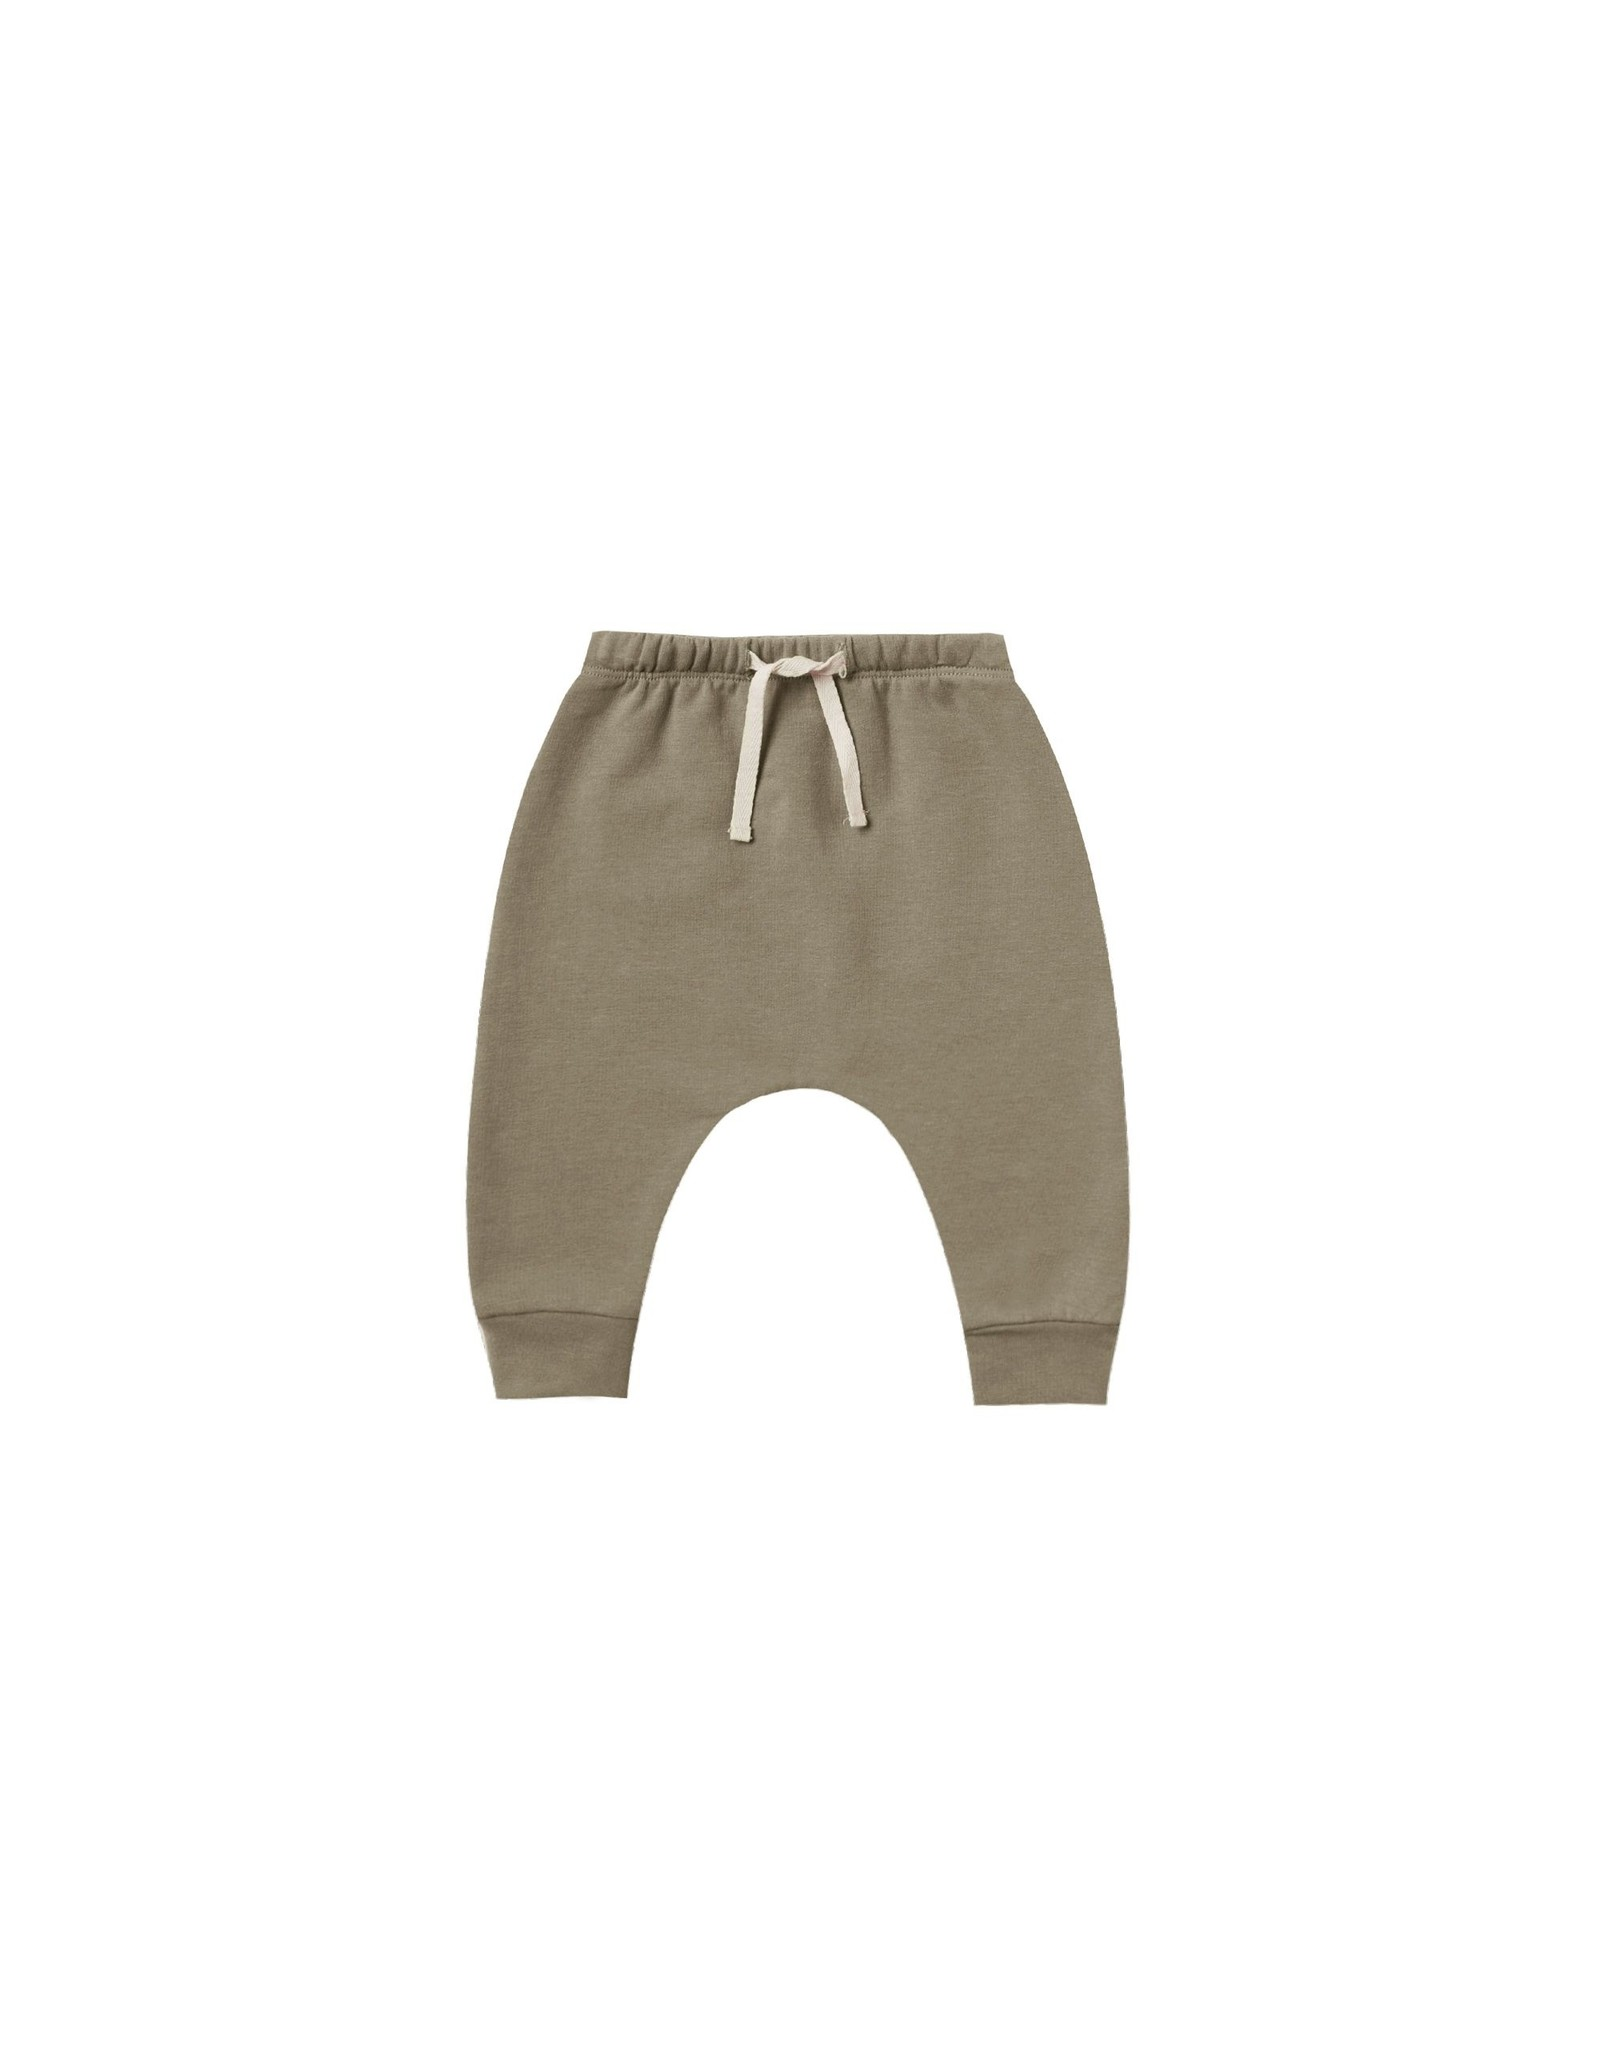 Quincy Mae fleece sweatpant- olive